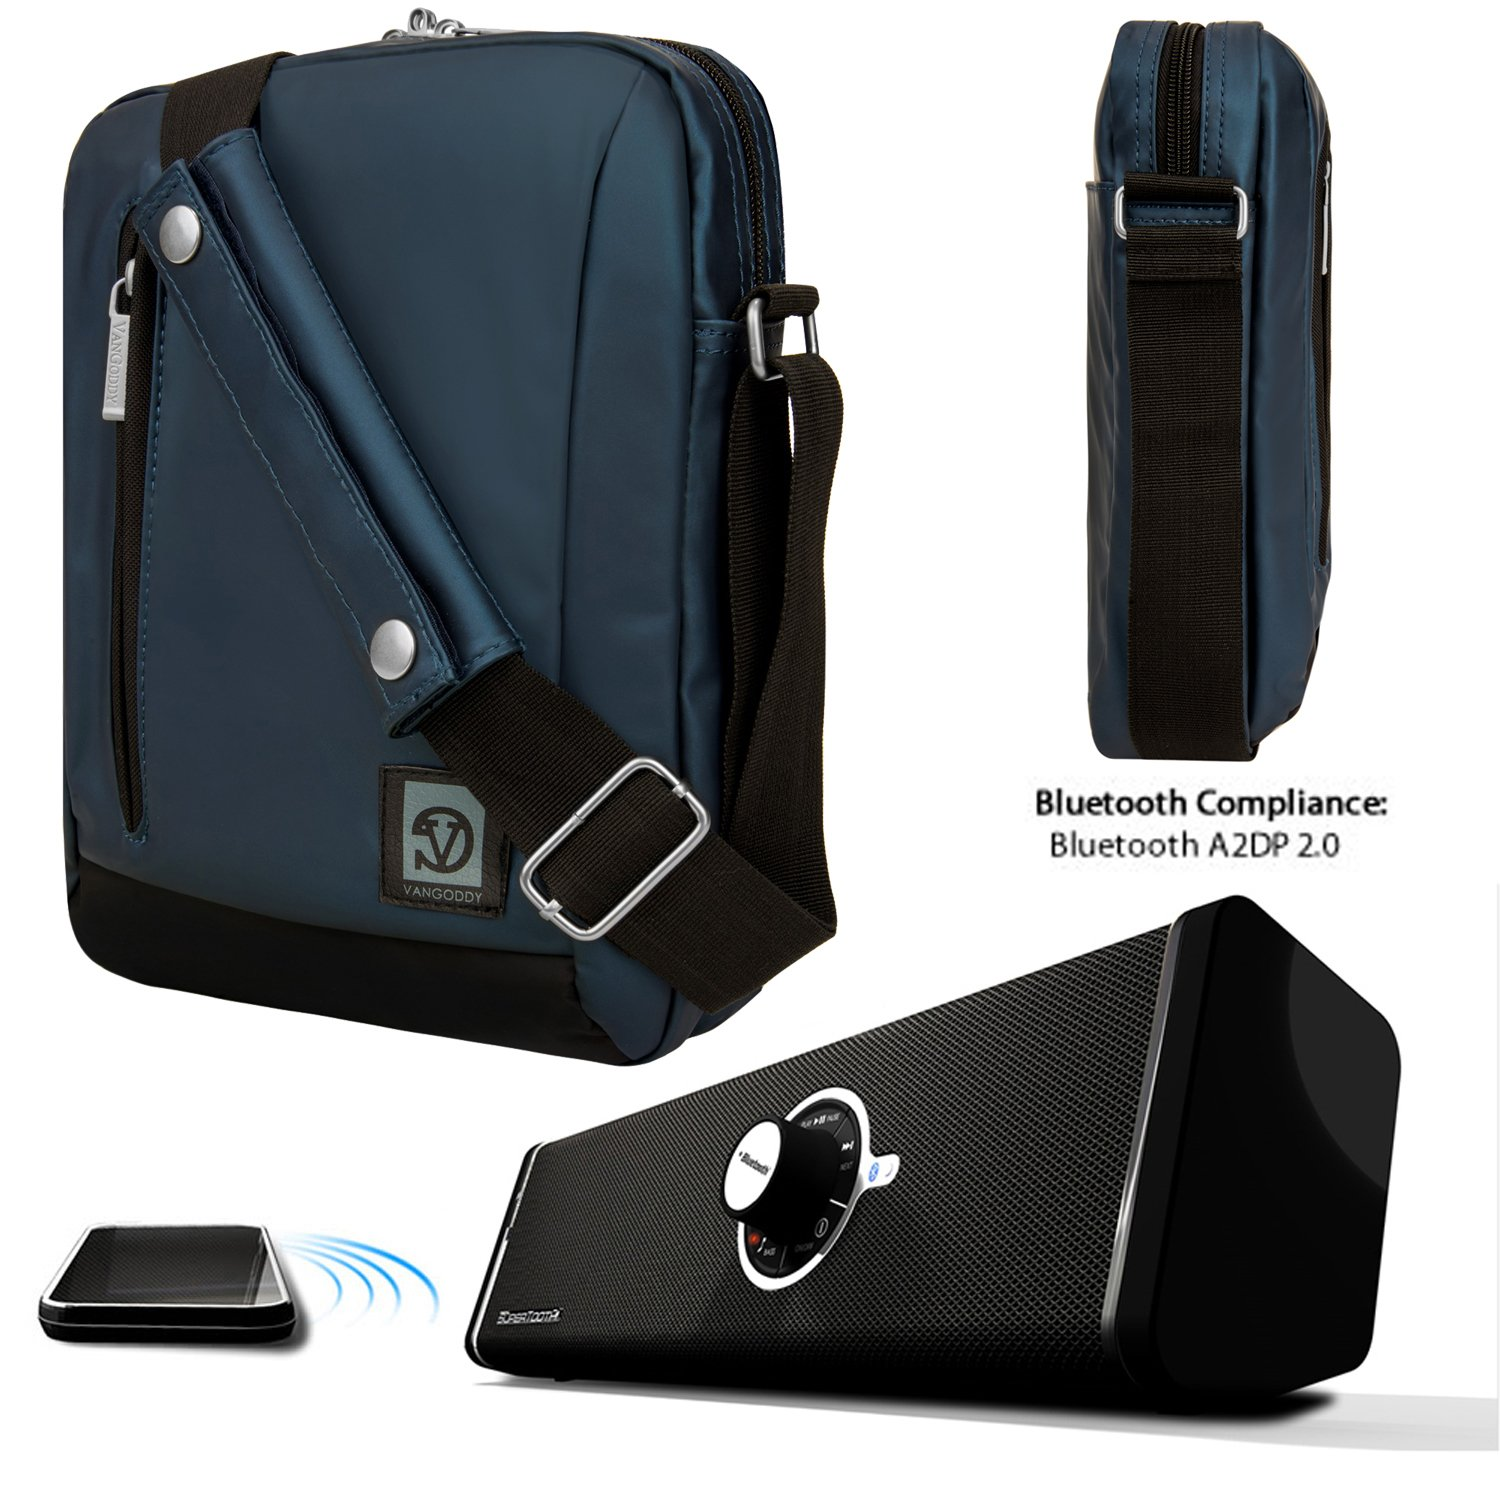 Adler Shoulder Bag Travel Case For Apple iPad Air 2 [New iPad Air] [iPad Air 2 Case] + Bluetooth Speaker by Vangoddy